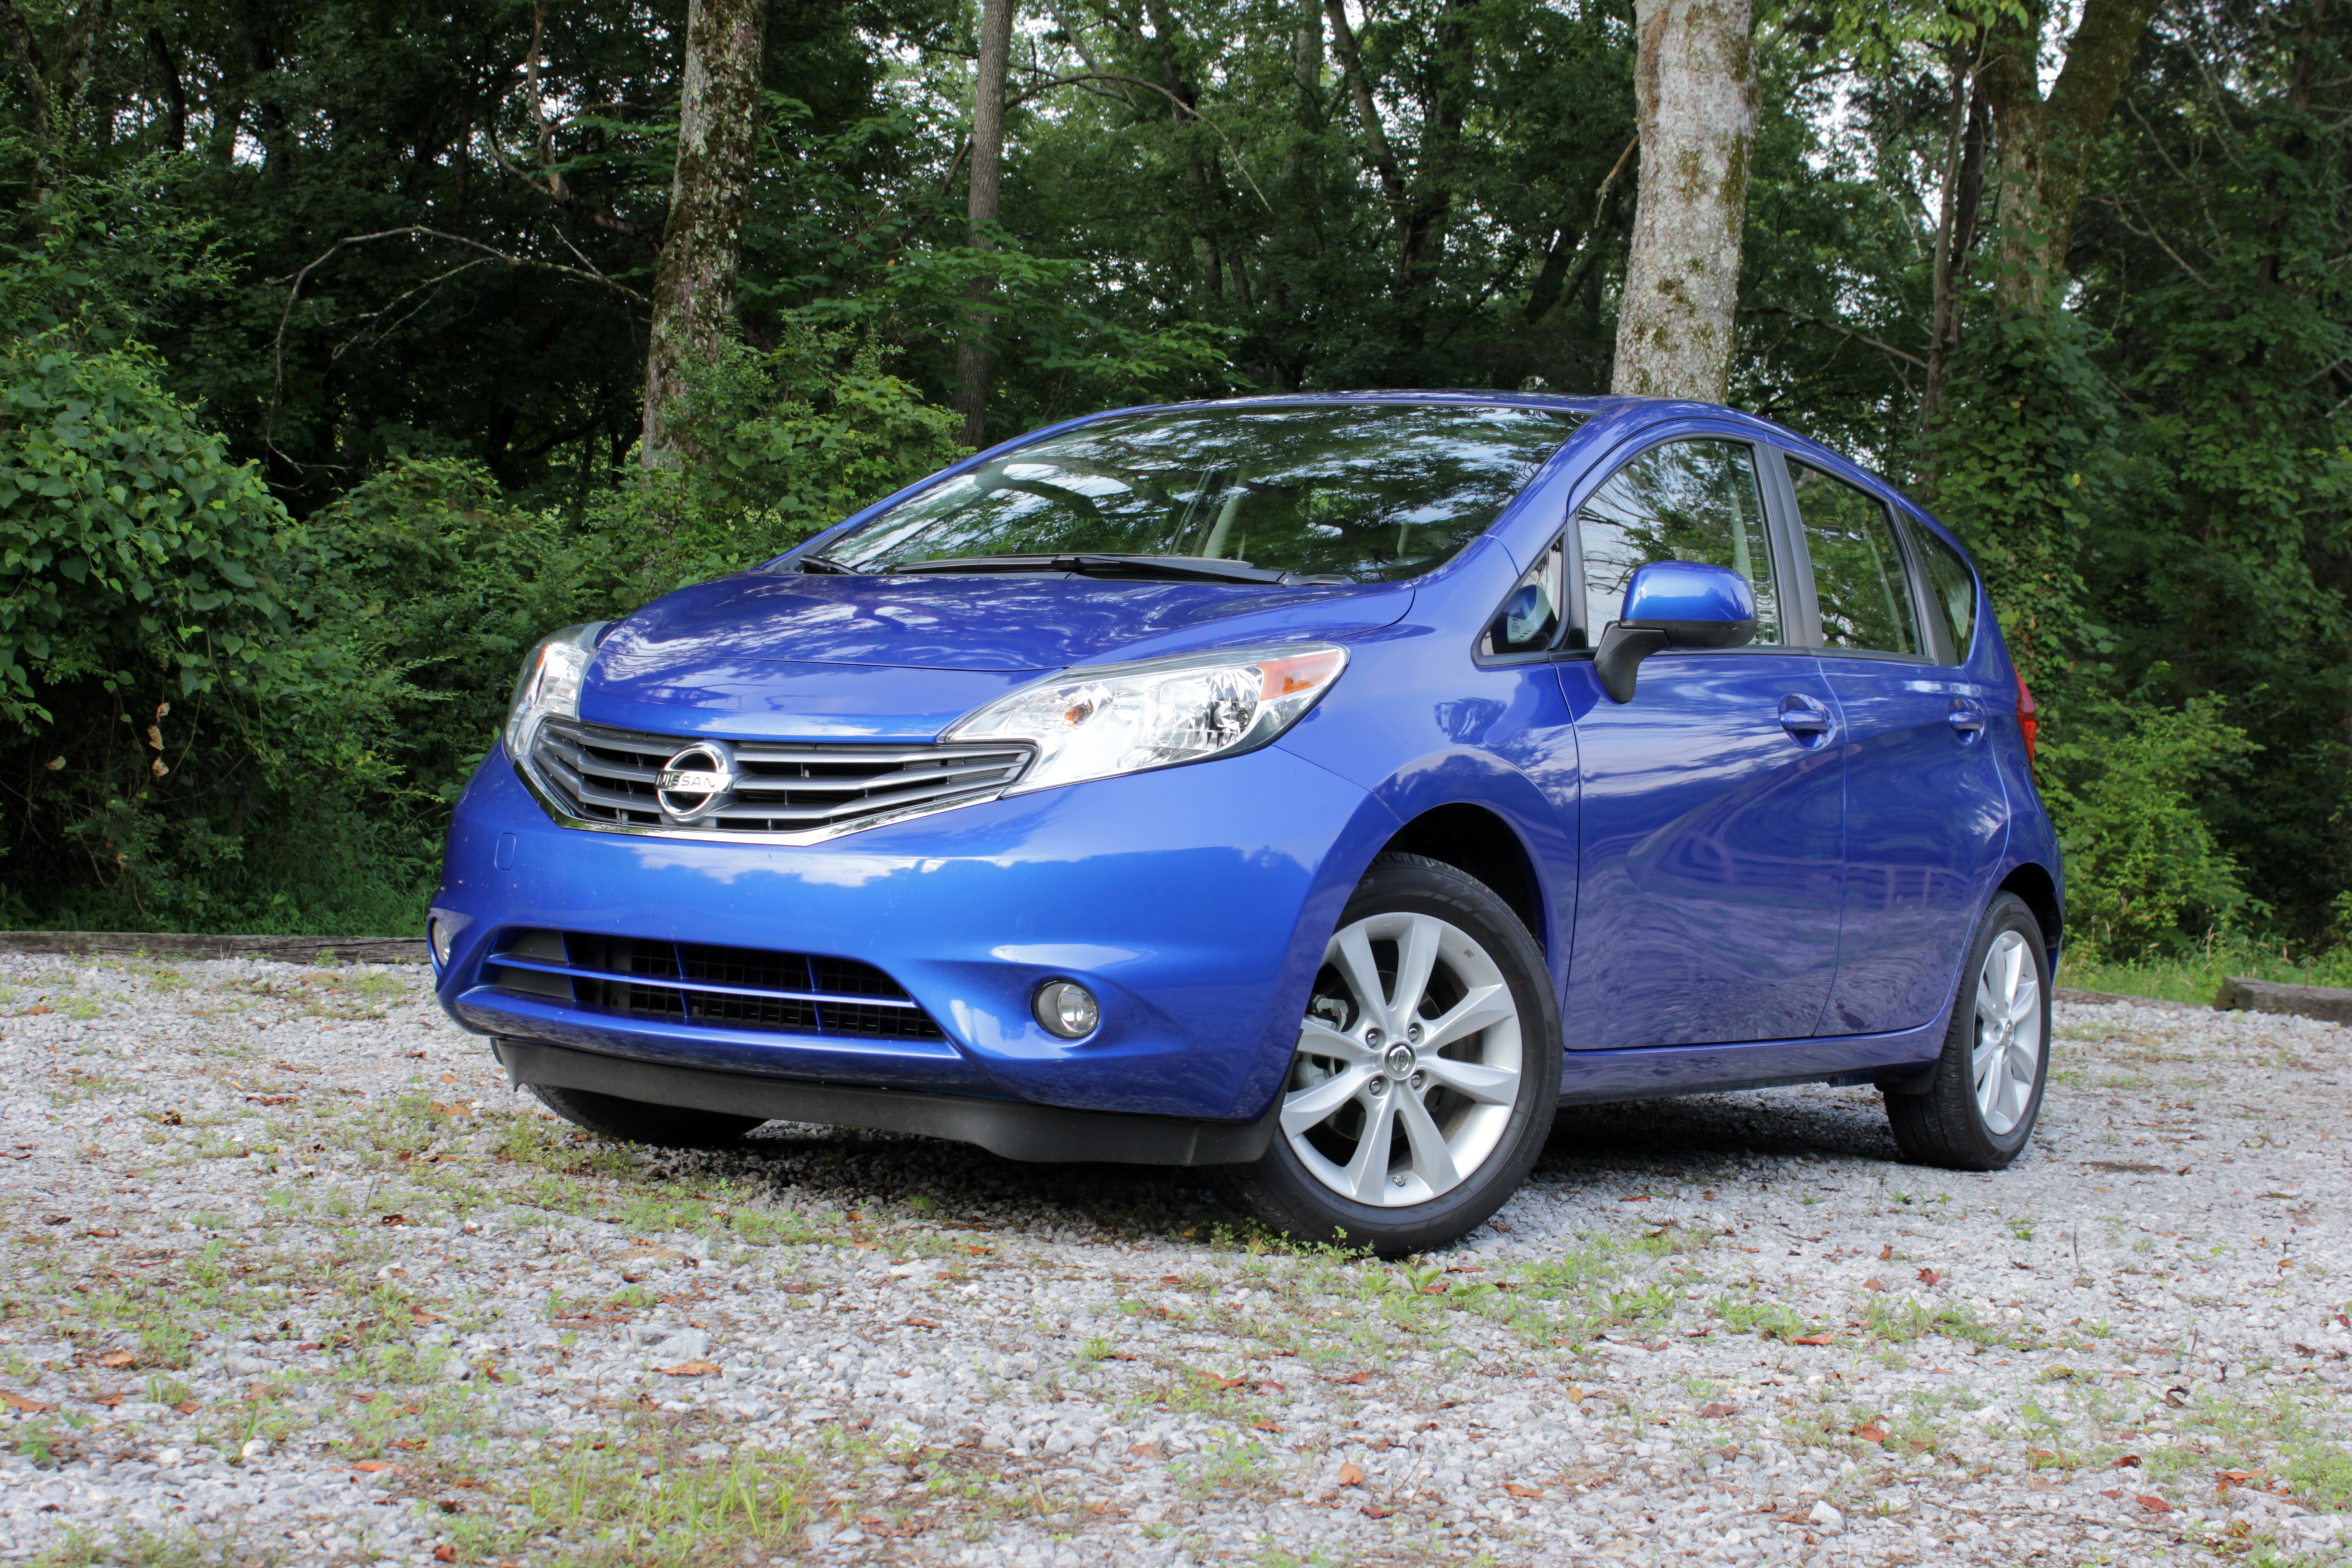 The Nissan Versa Note Is The Smallest And Cheapest Hatch You Can Get From  Nissan. It Was Built To Provide The Highest Level Of Space And Equipment  For The ...